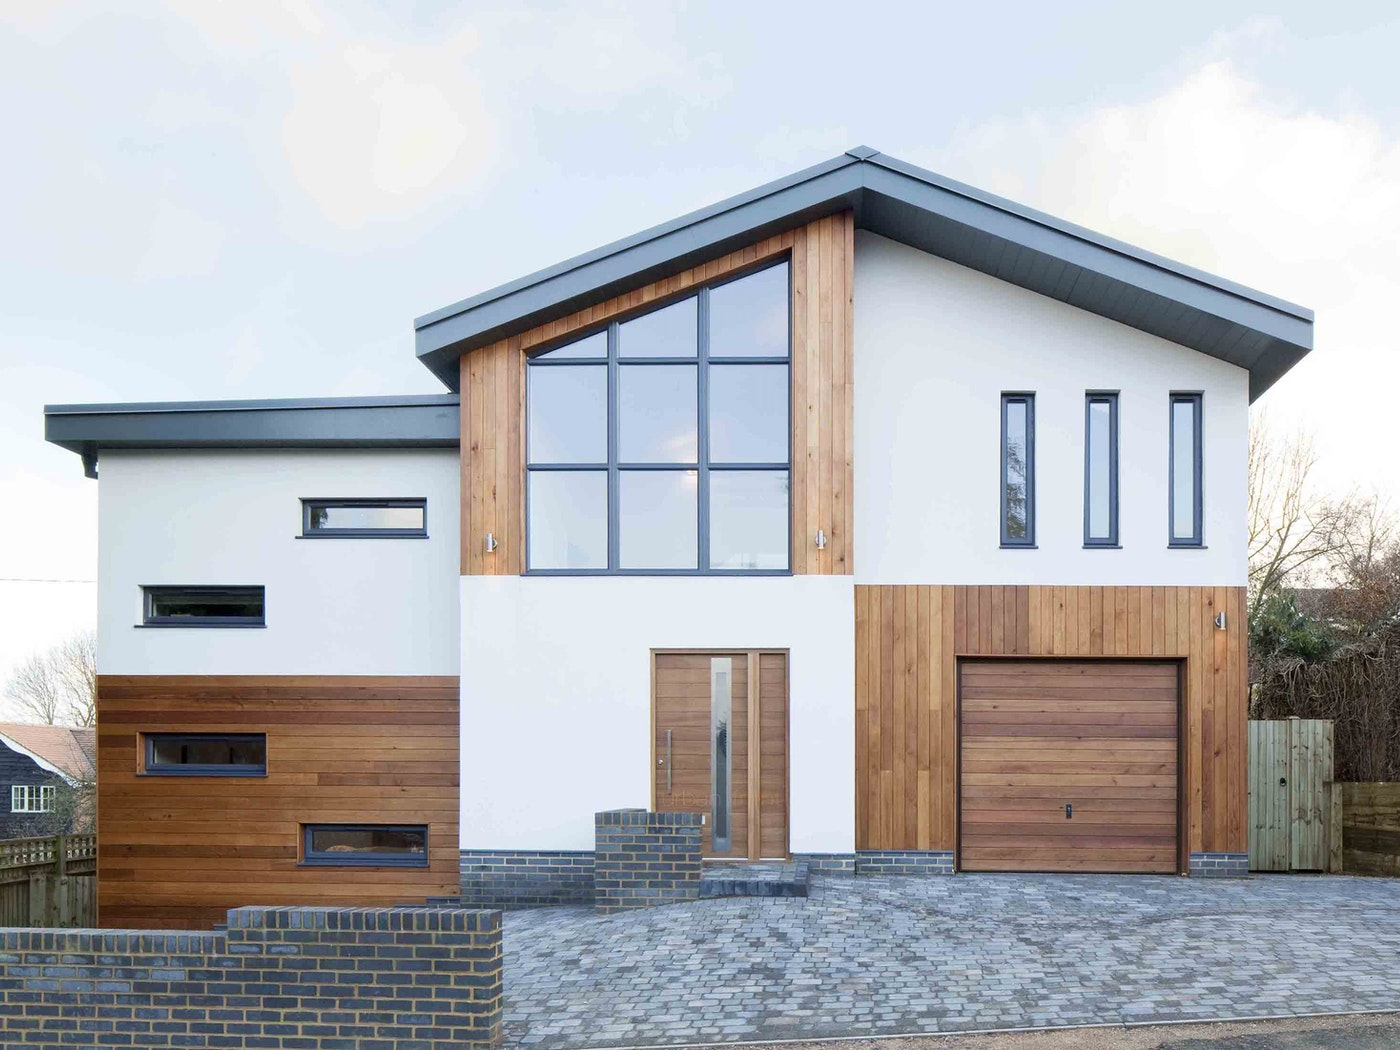 Here the front & garage door designs match, but the glass panel in the front door adds a point of difference and ties in with the contemporary glass styling of the rest of the building